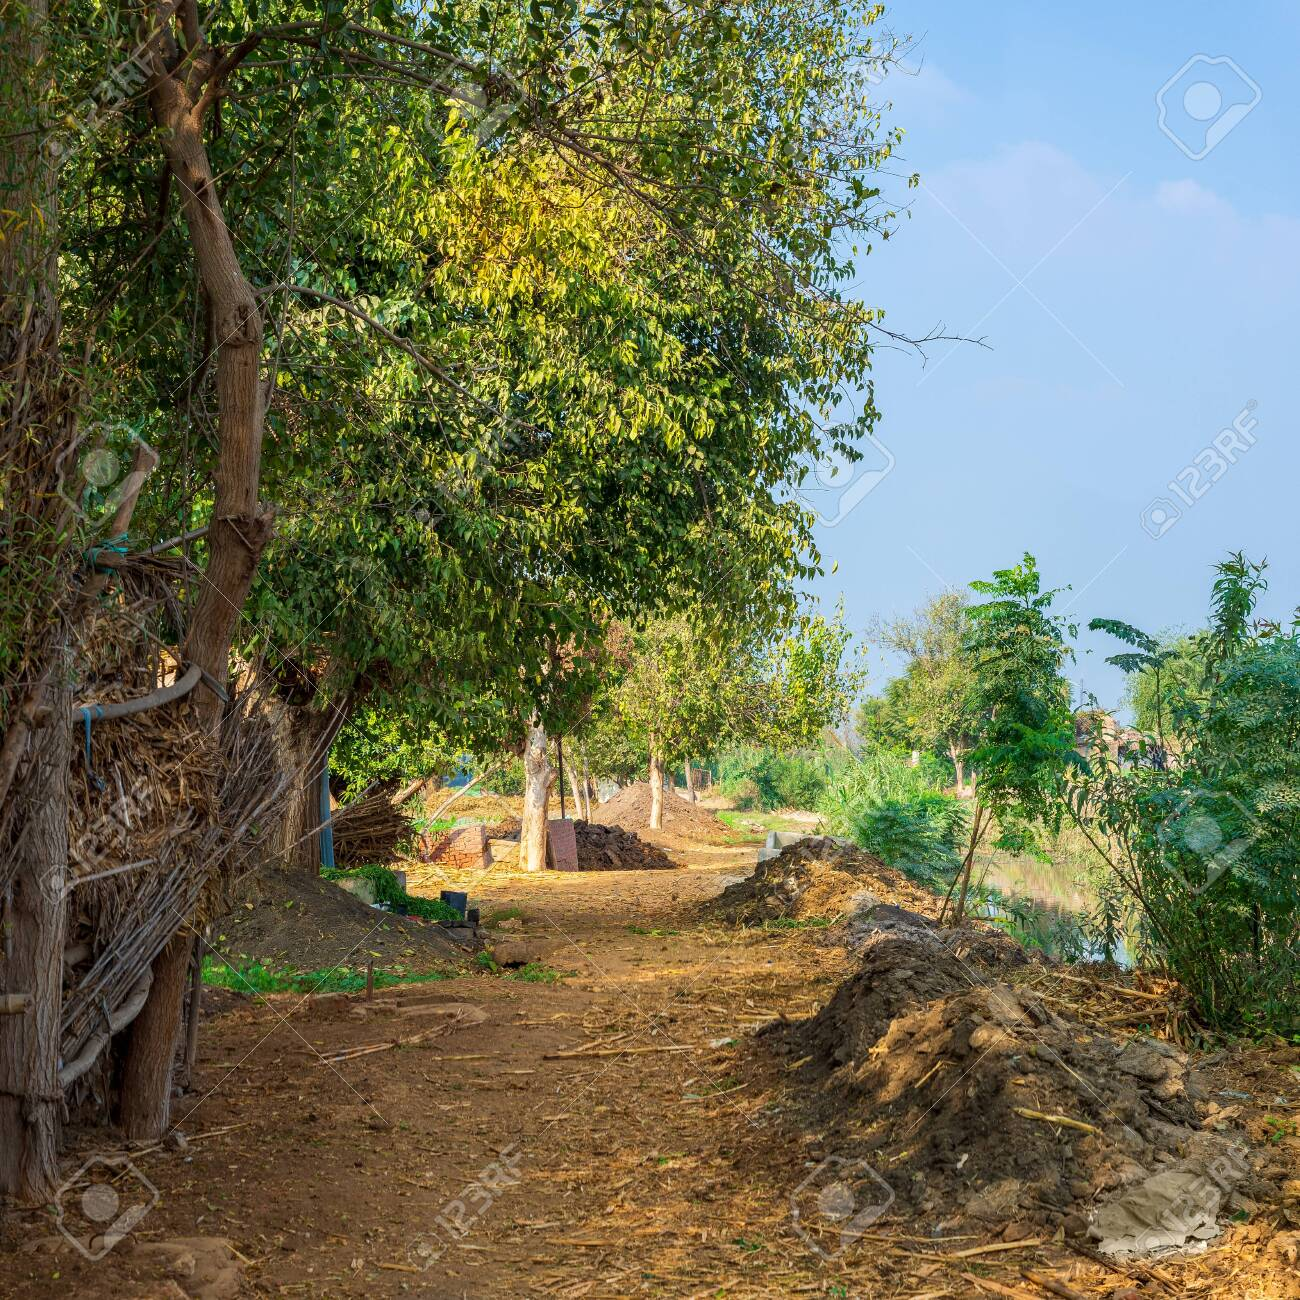 Large tree with spreading green crown in open air in valley under bright blue sky at traditional Egyptian village - 151605708